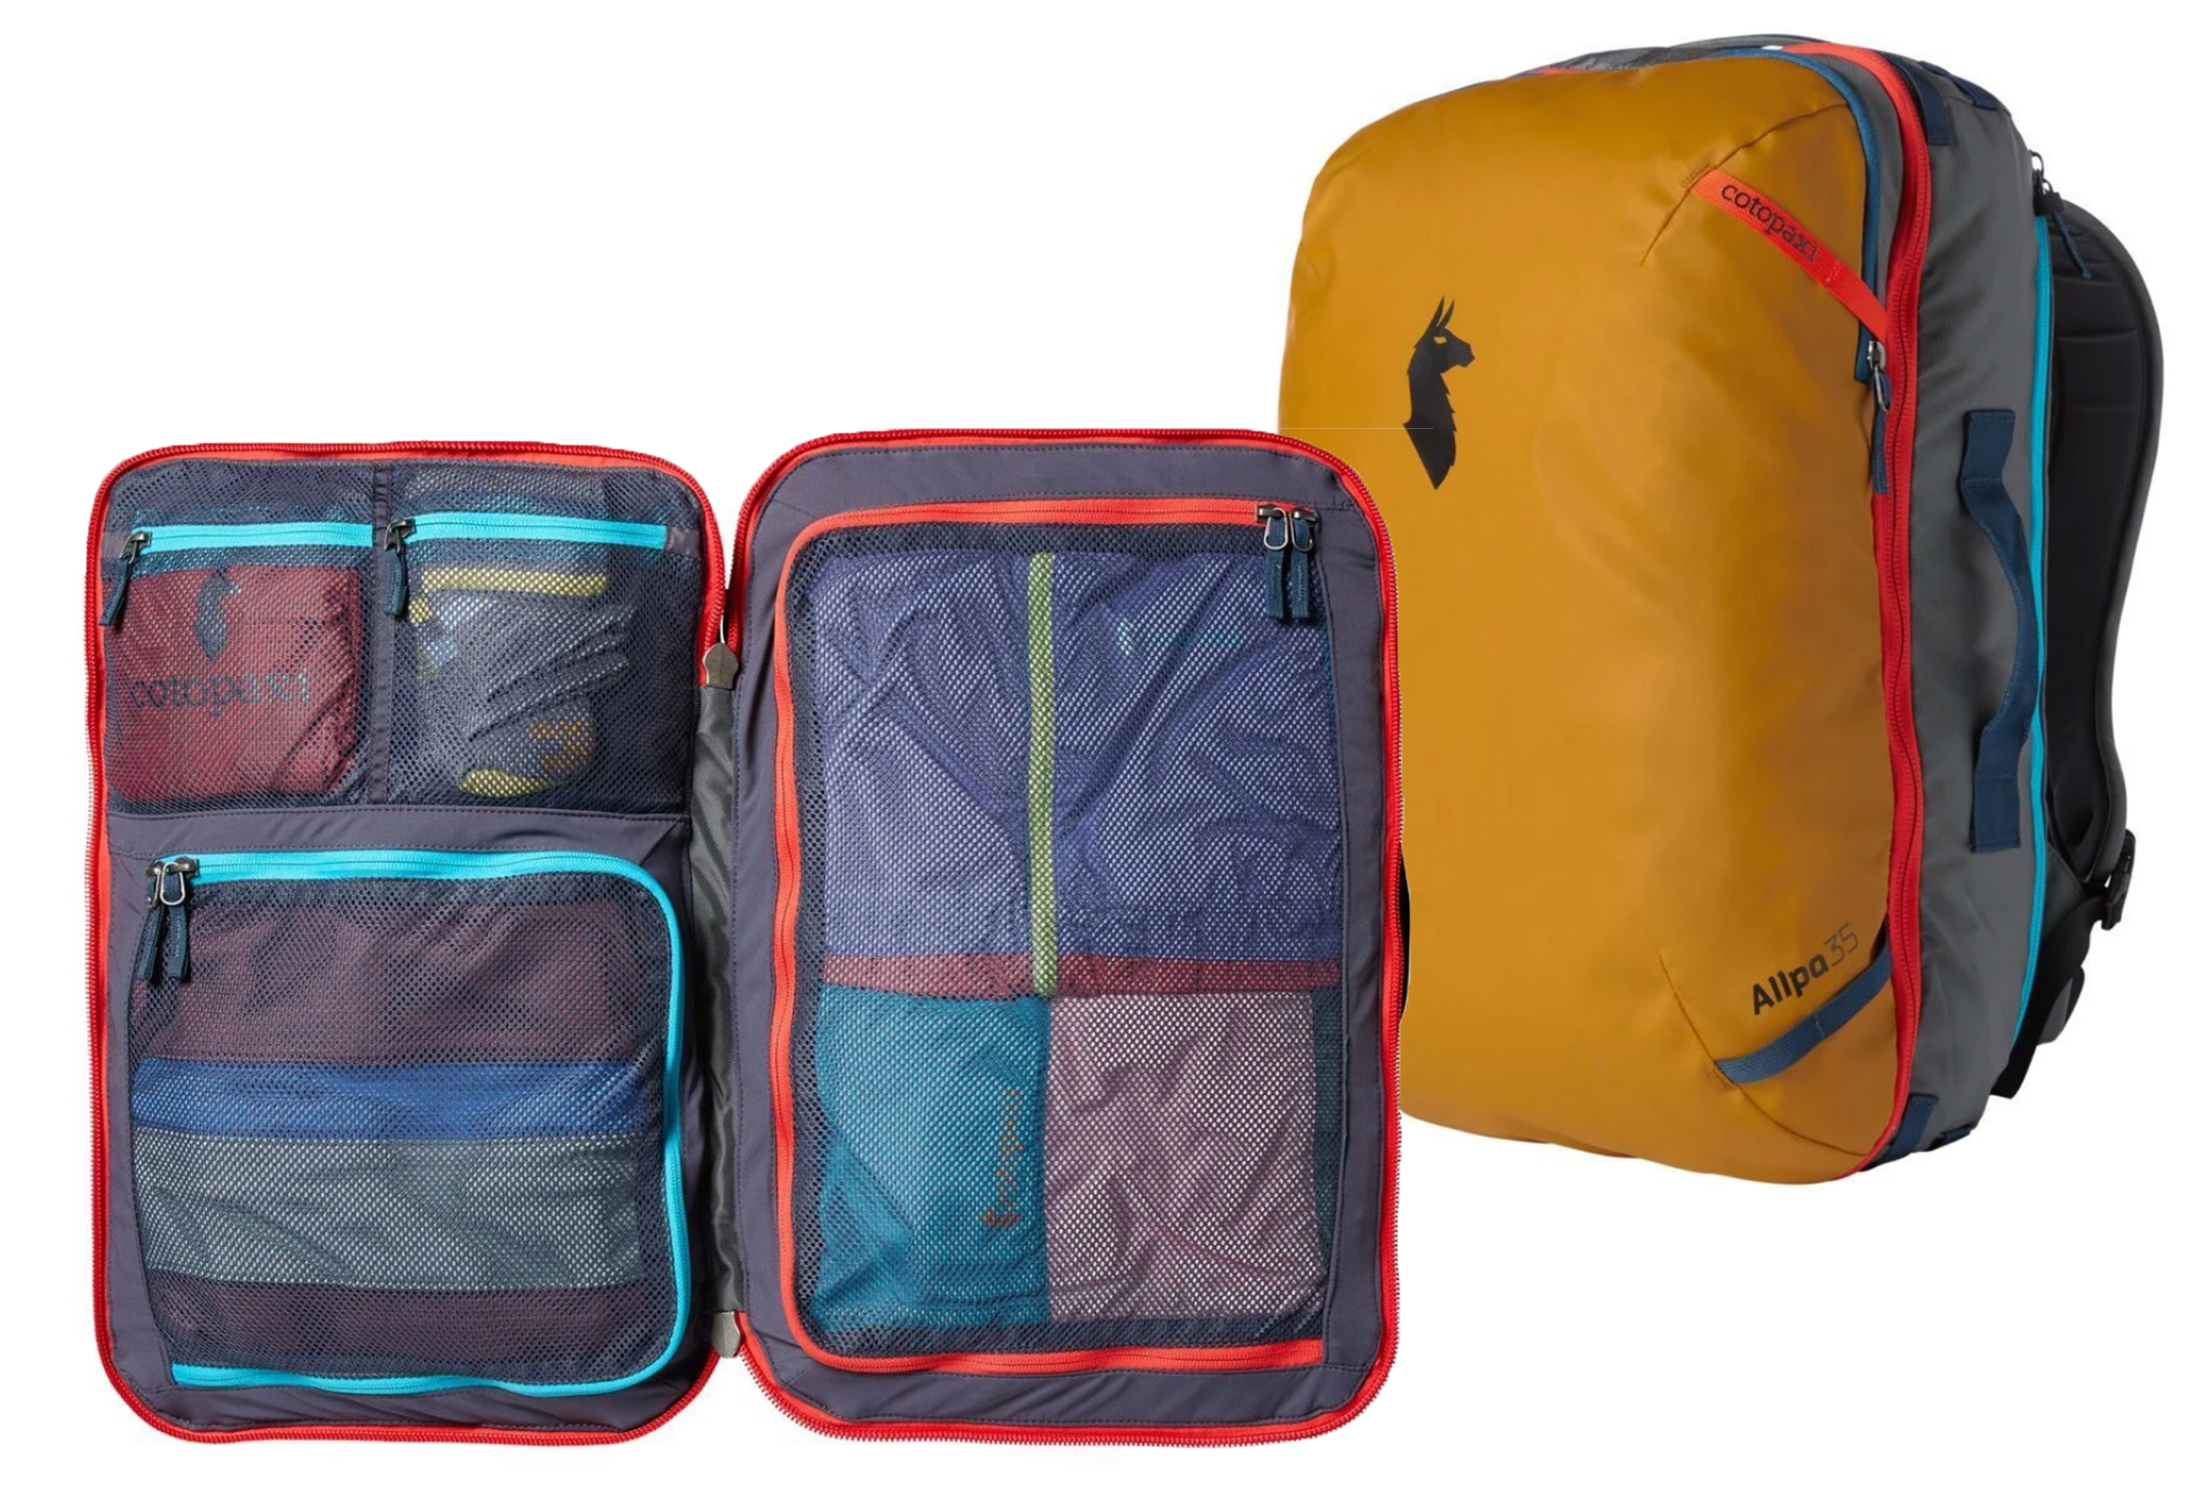 cotopaxi 35L travel pack